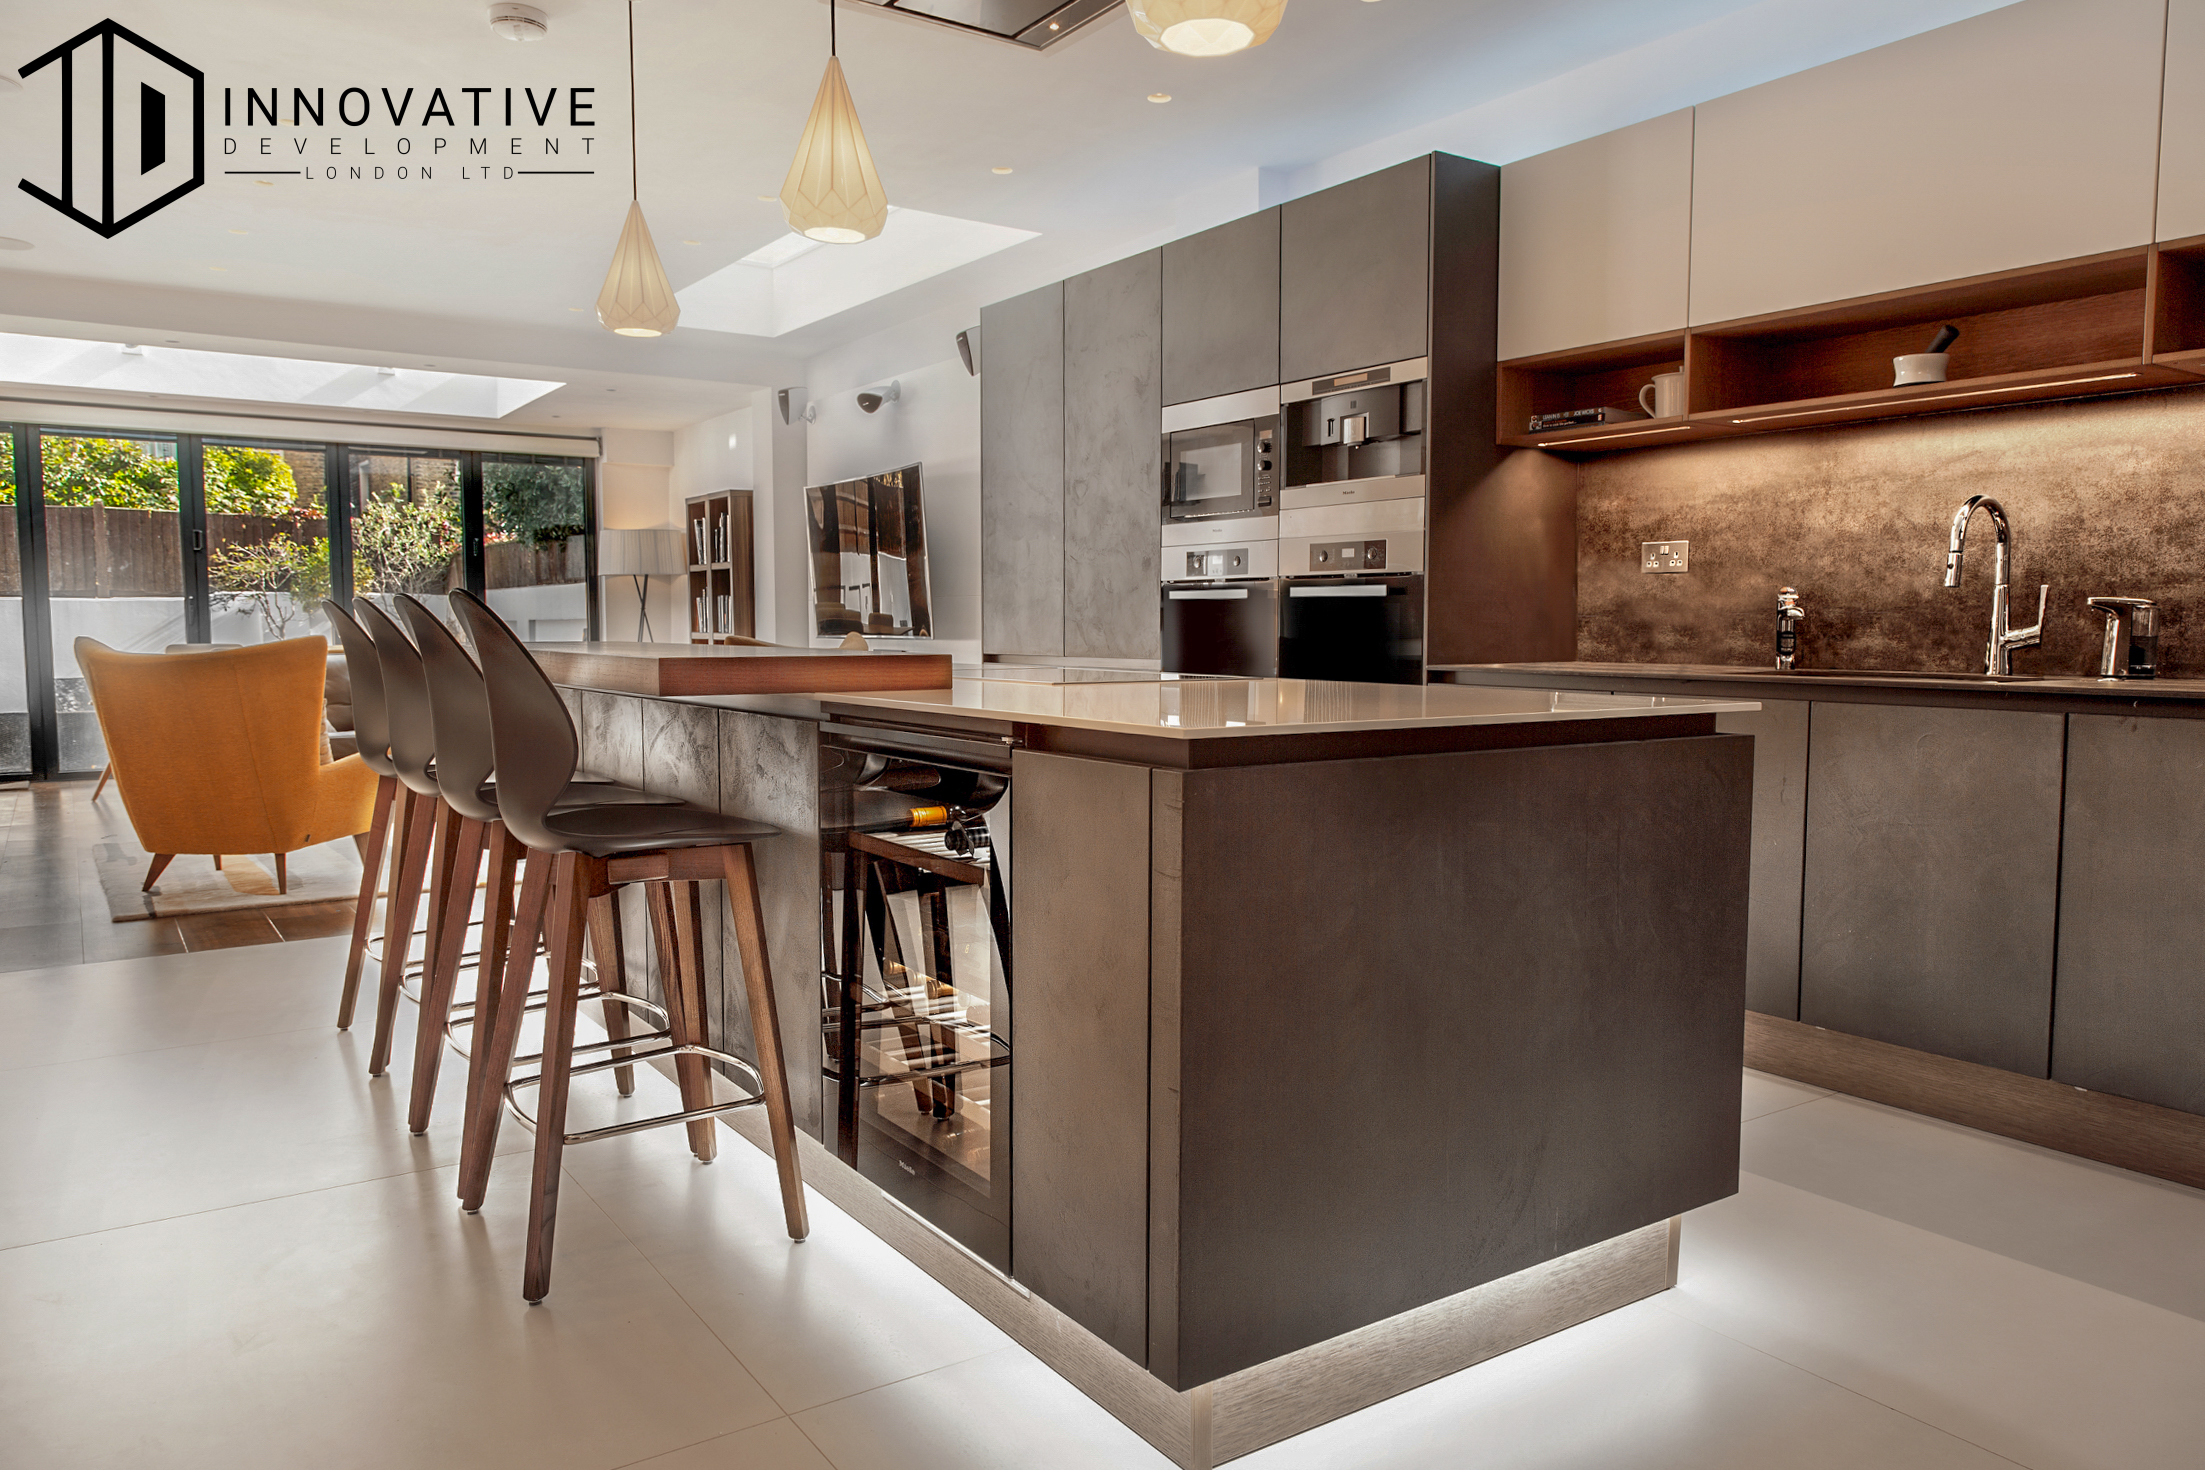 Whole view of a Stunning modern Kitchen with a combined Living room area with a creamy interior design for a completed Kitchen extension in Chiswick